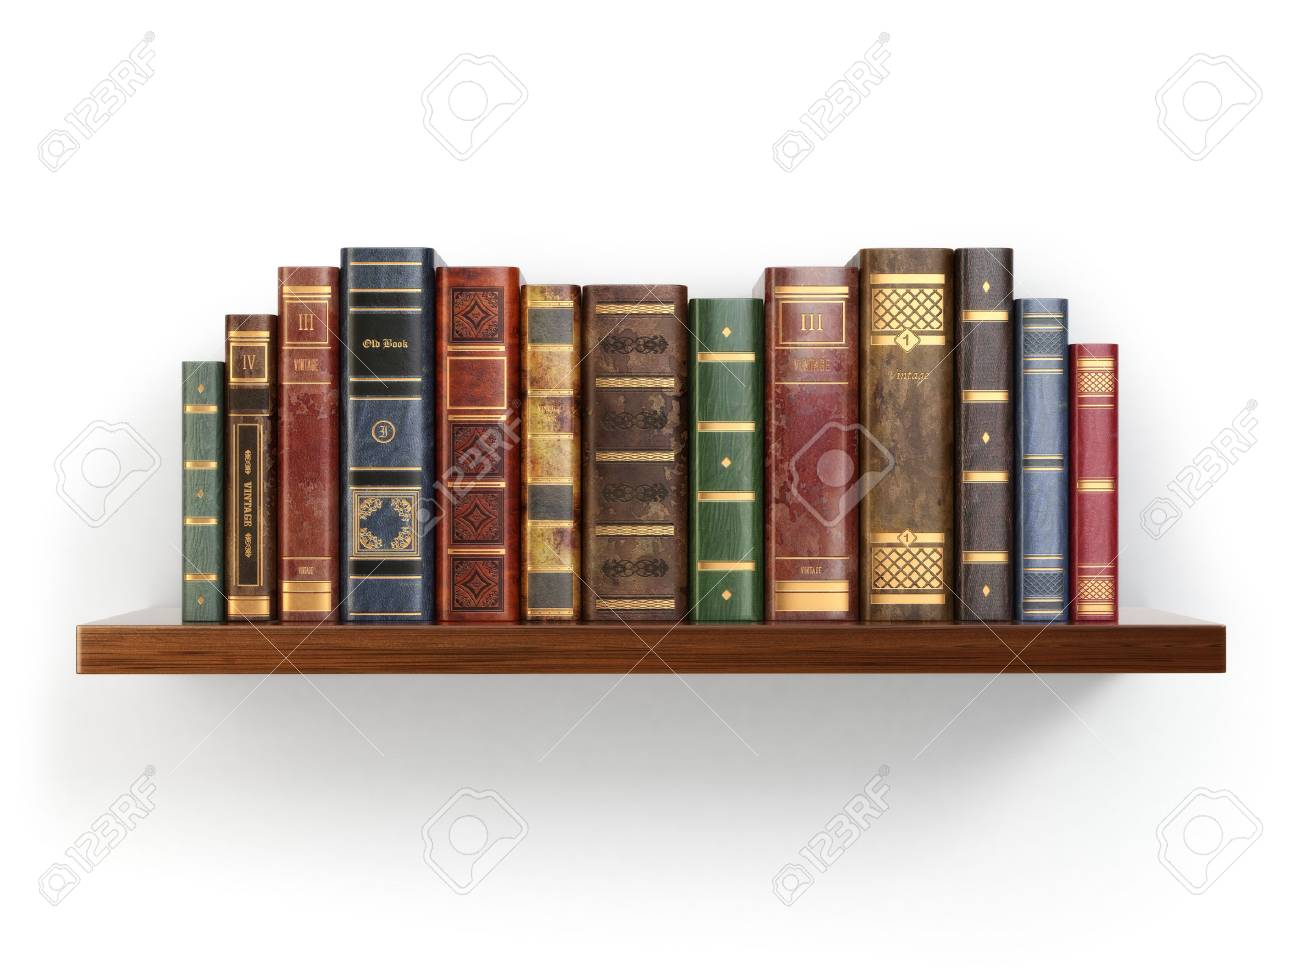 Vintage old books on shelf isolated on